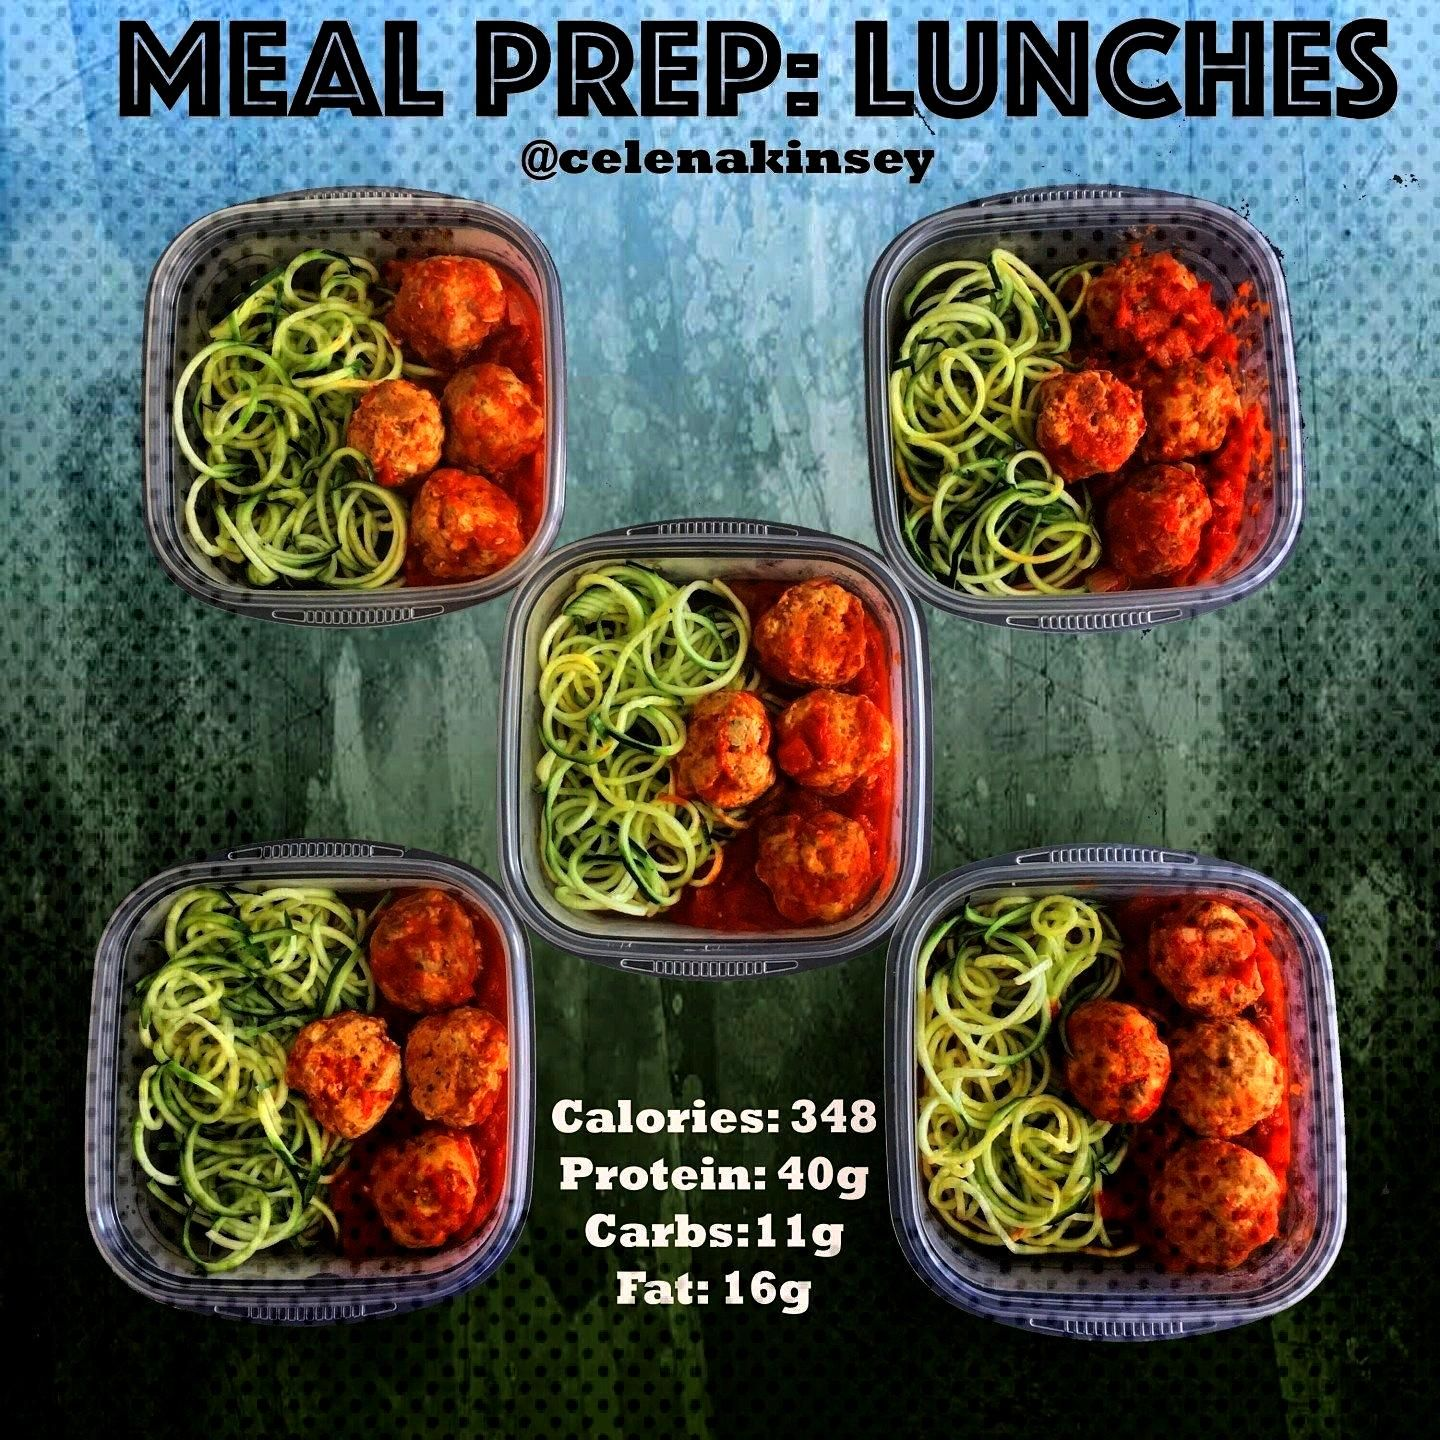 Prep Lunches Zoodles amp Paleo Meatballs - Celena Kinsey, Meal Prep Lunches Zoodles amp Paleo Meatba